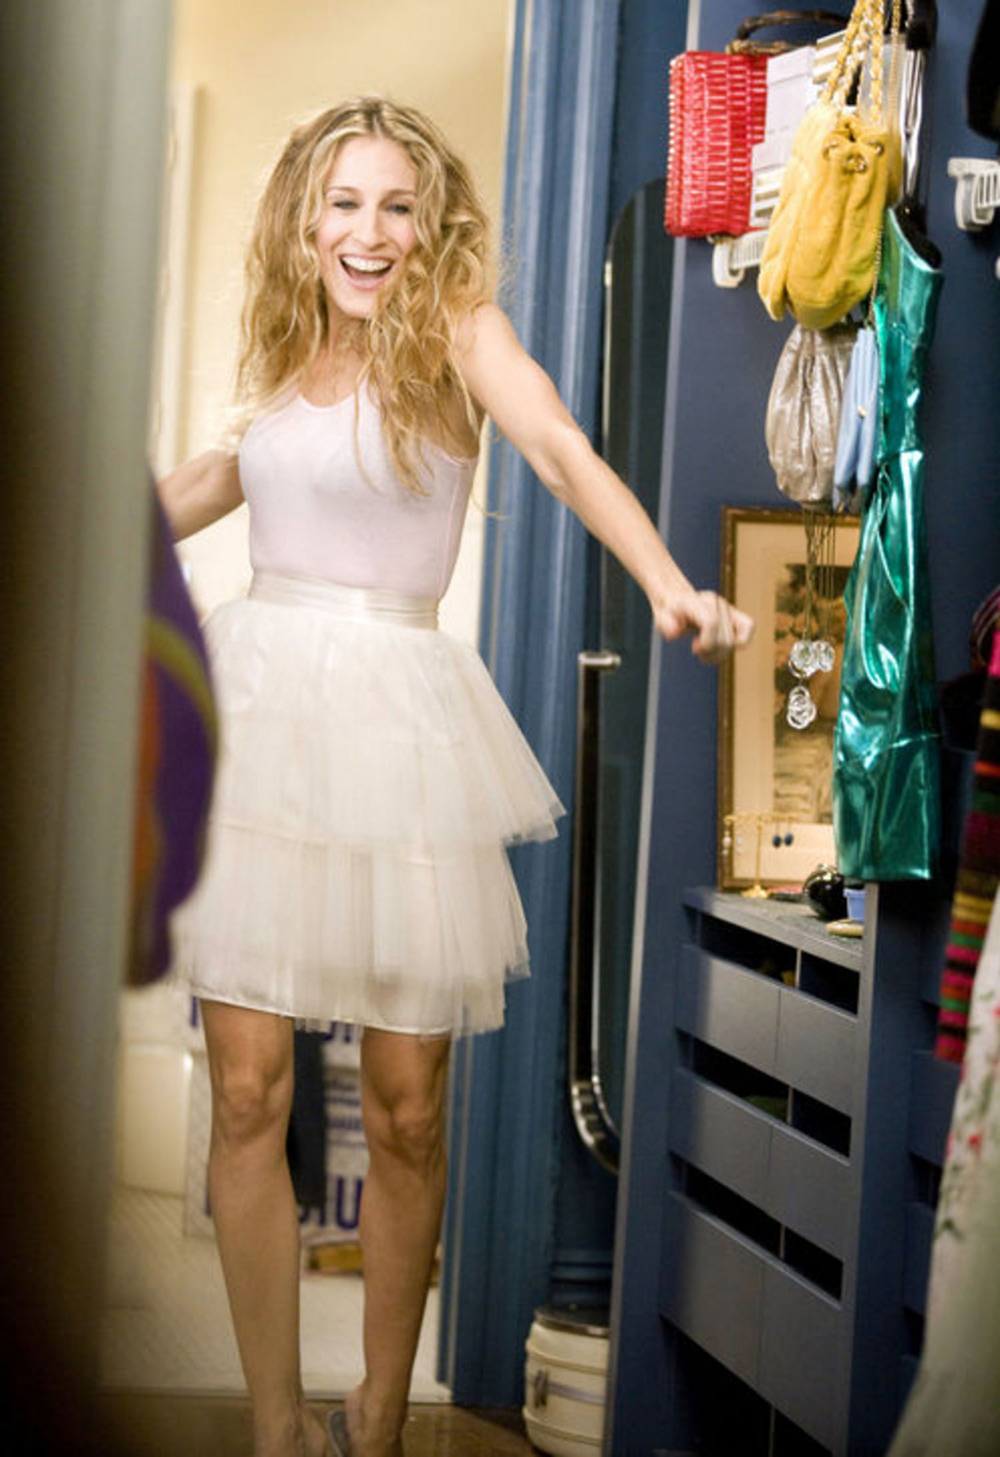 These Walk-in Wardrobes From Films Will Make You So Jealous 9